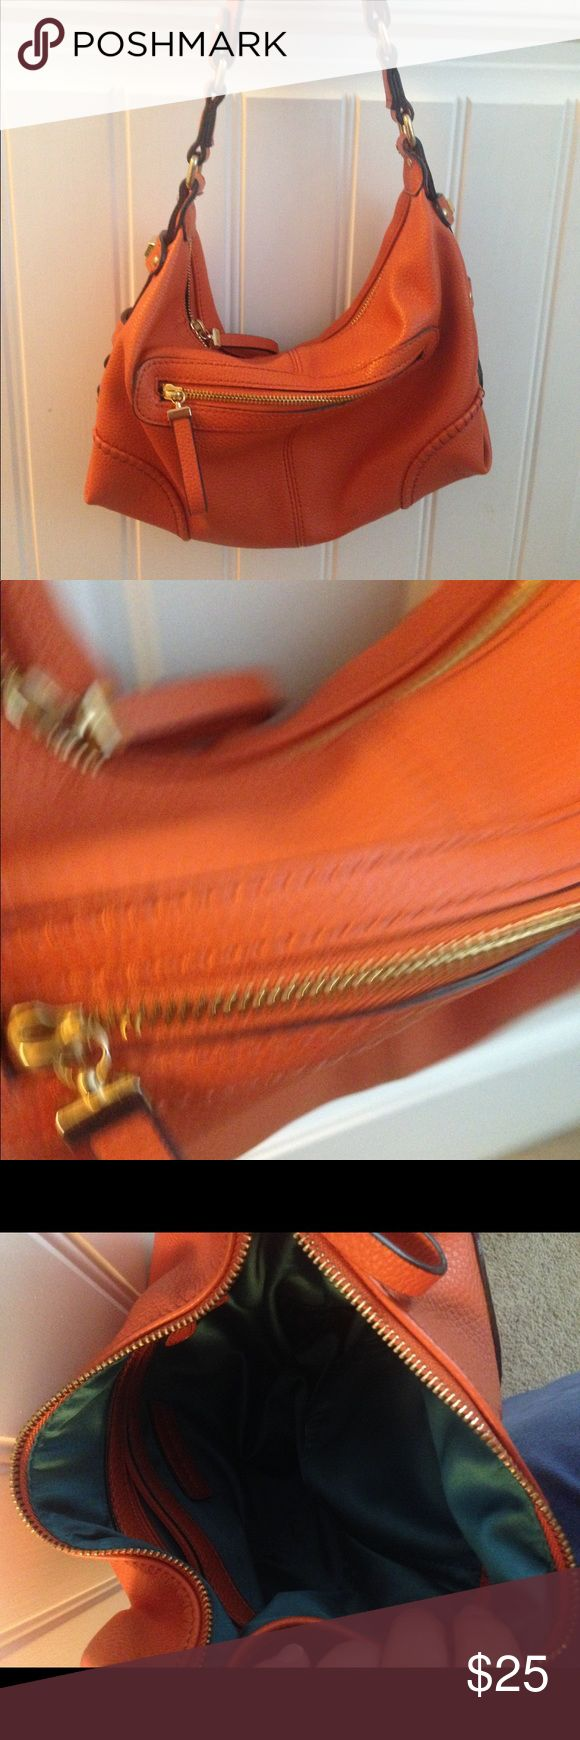 Kate Landry Orange Shoulder Bag VGUC Great fall color! Sports fans or fall color enthusiasts!! Lined with teal and has gold accent hardware. No major flaws, but was used  several times. Pic on shoulder to show size. Hobo style Kate Landry Bags